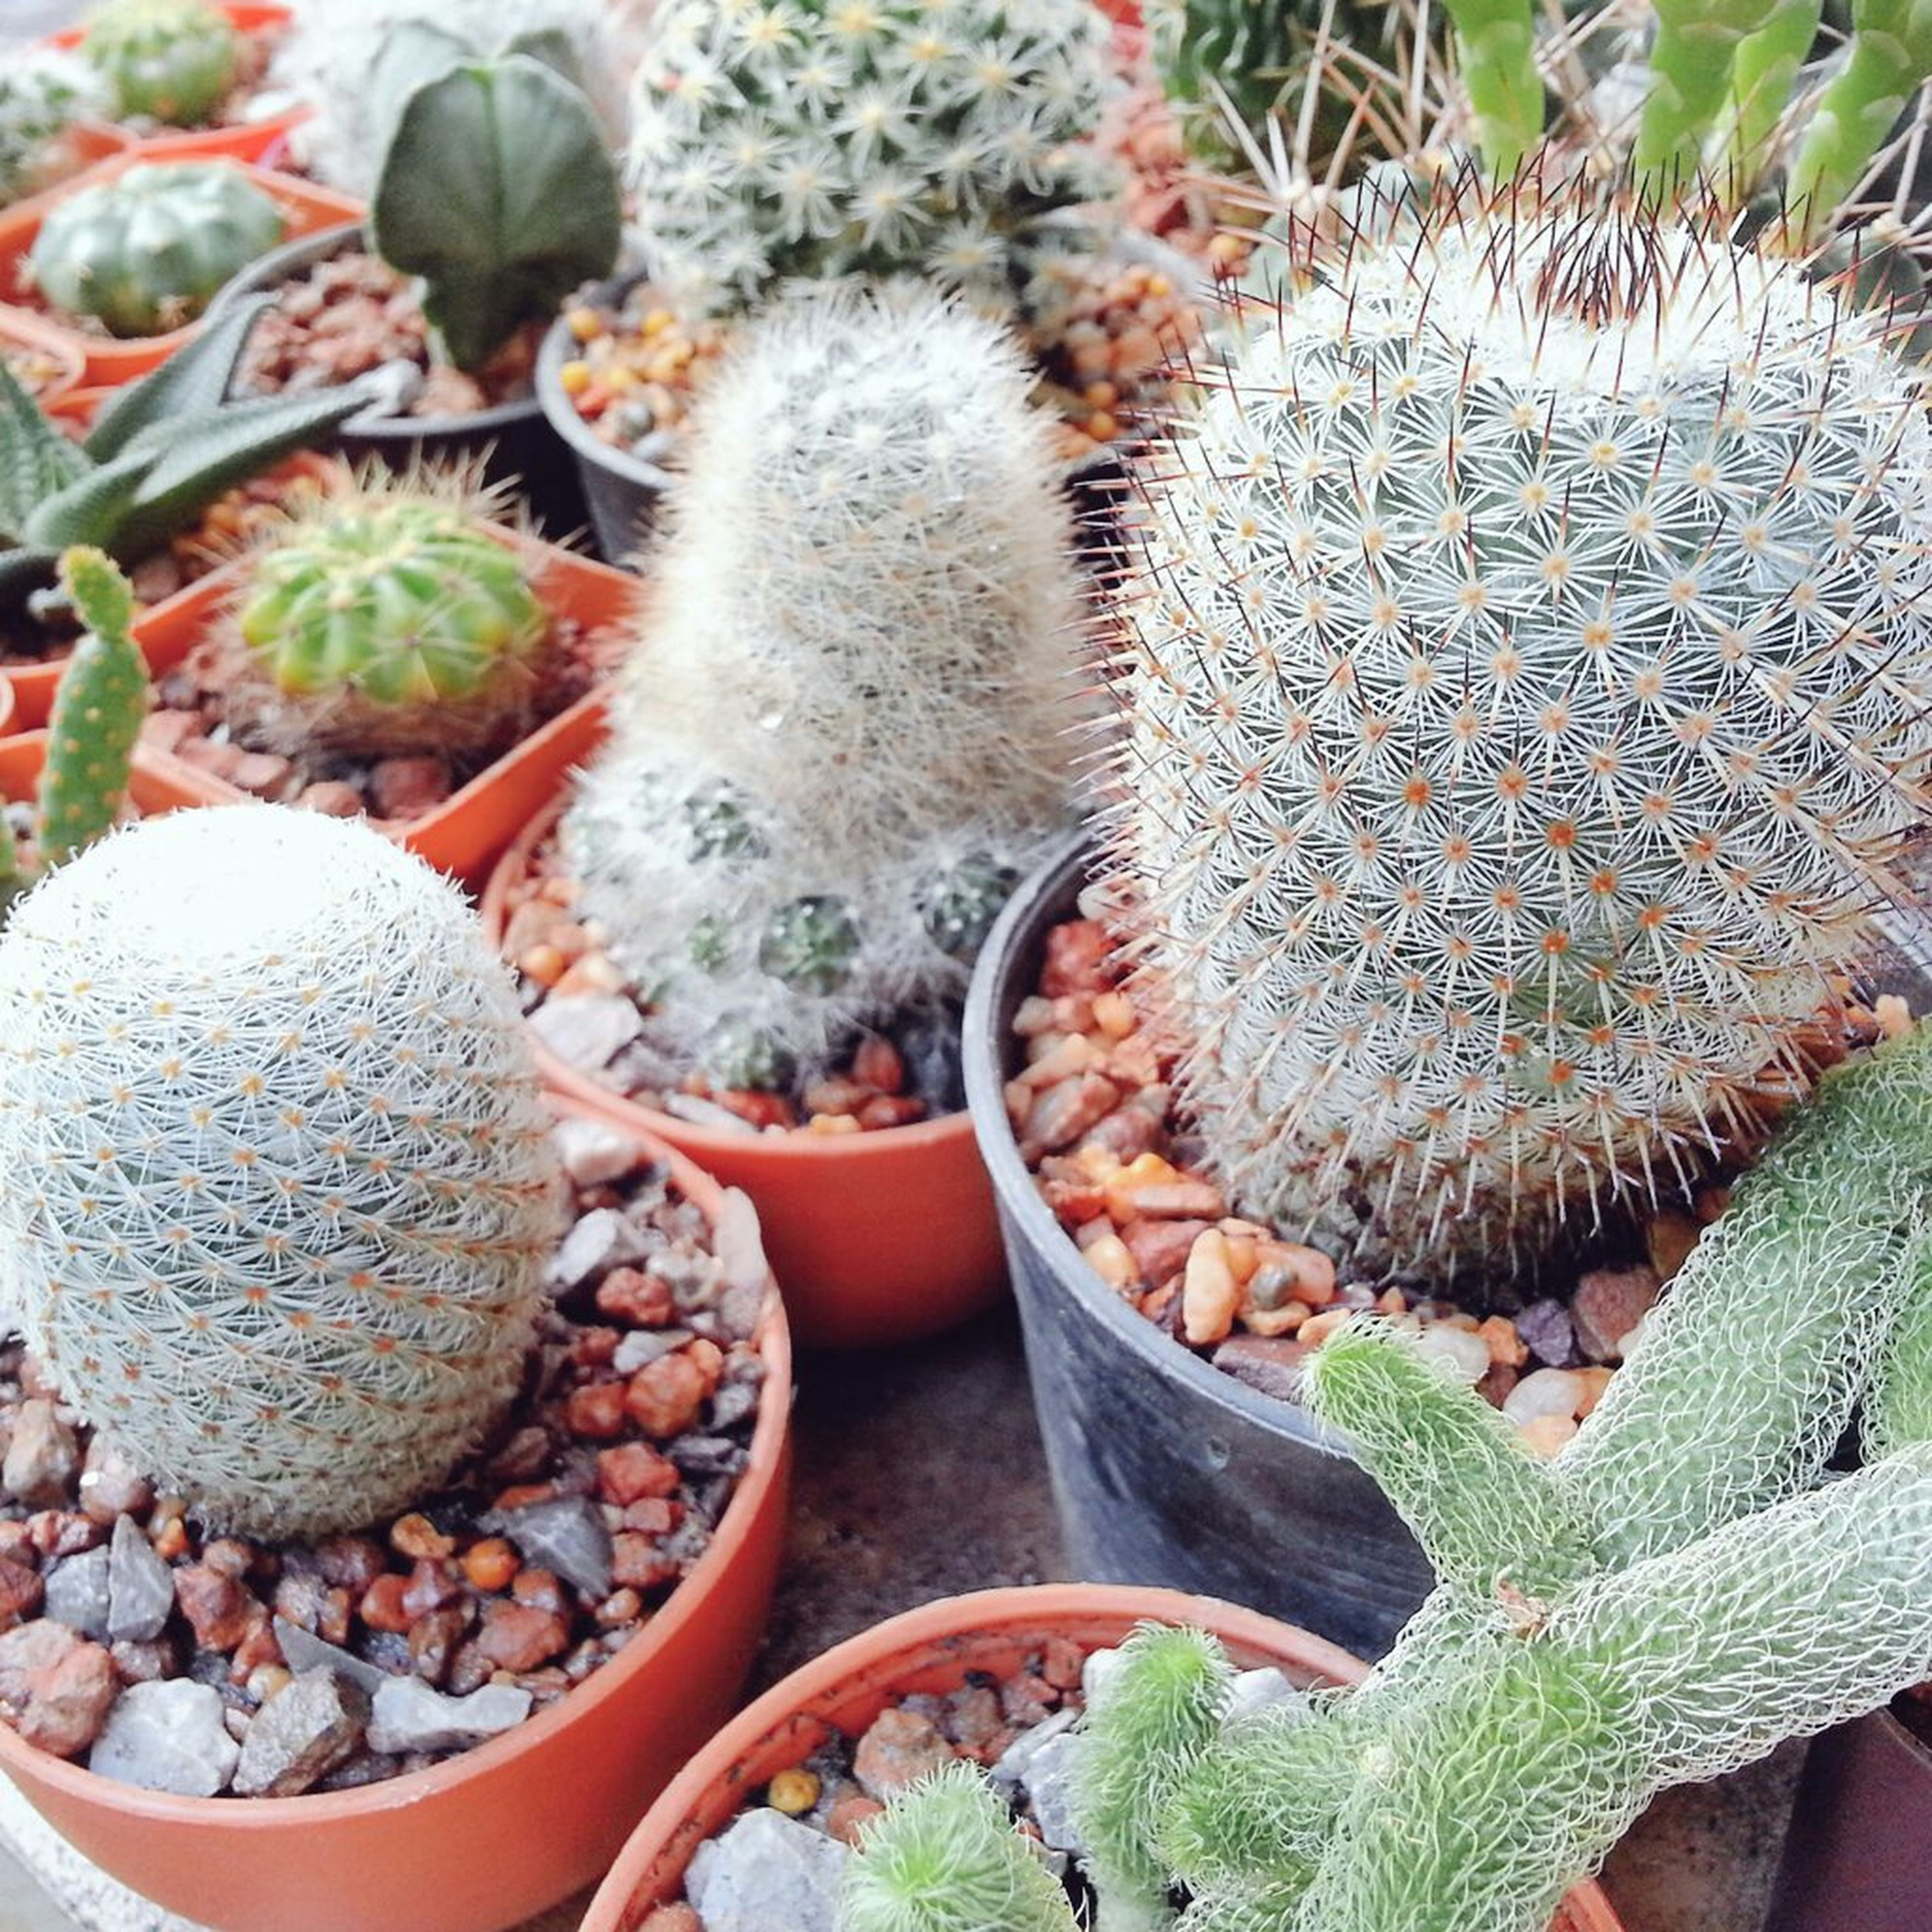 growth, plant, leaf, cactus, nature, close-up, green color, thorn, freshness, beauty in nature, growing, high angle view, outdoors, field, day, succulent plant, spiked, potted plant, no people, tranquility